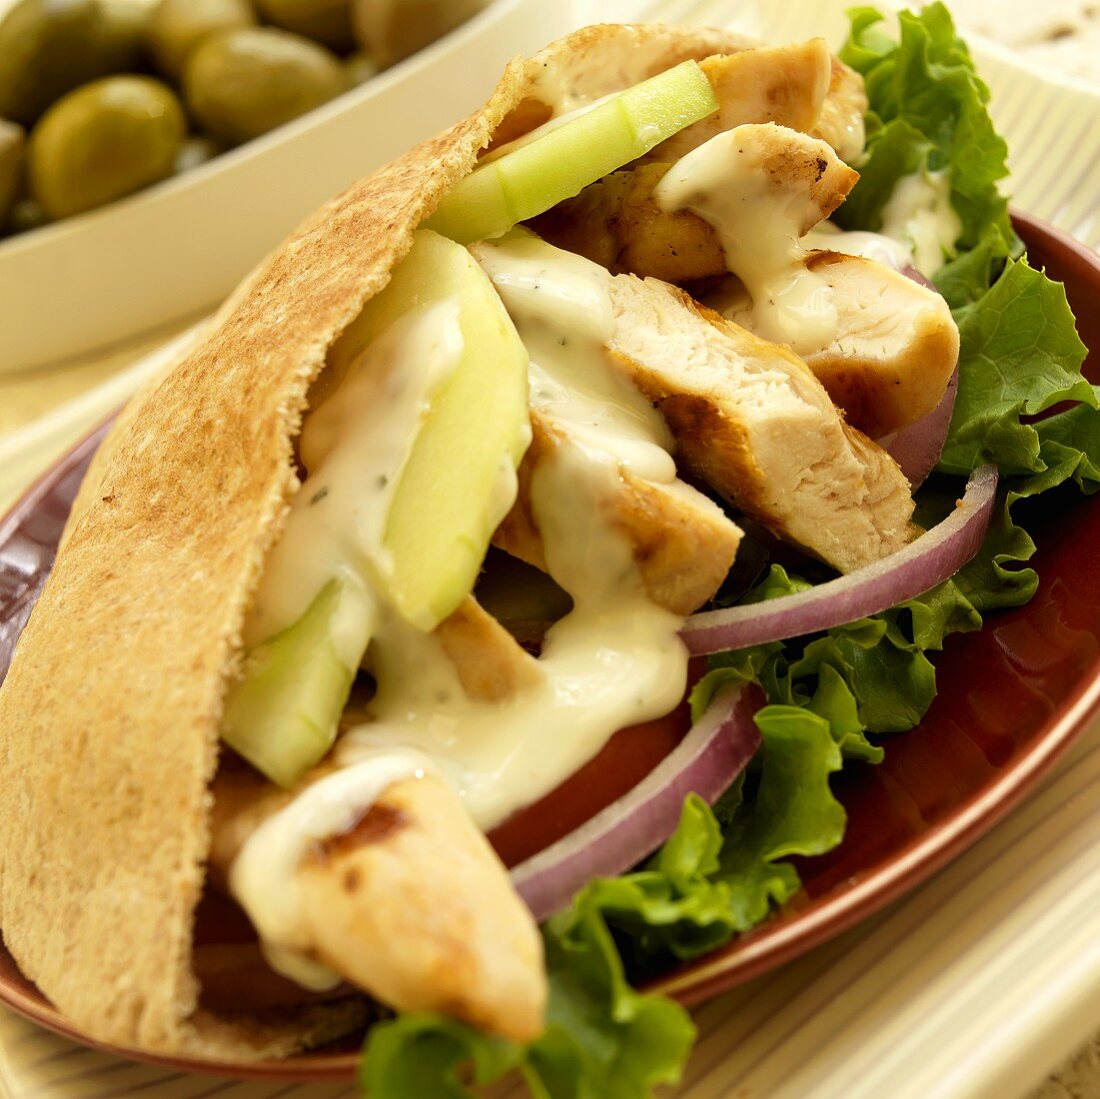 Chicken Pita Sandwich with Cucumber, Red Onion and Ranch Dressing